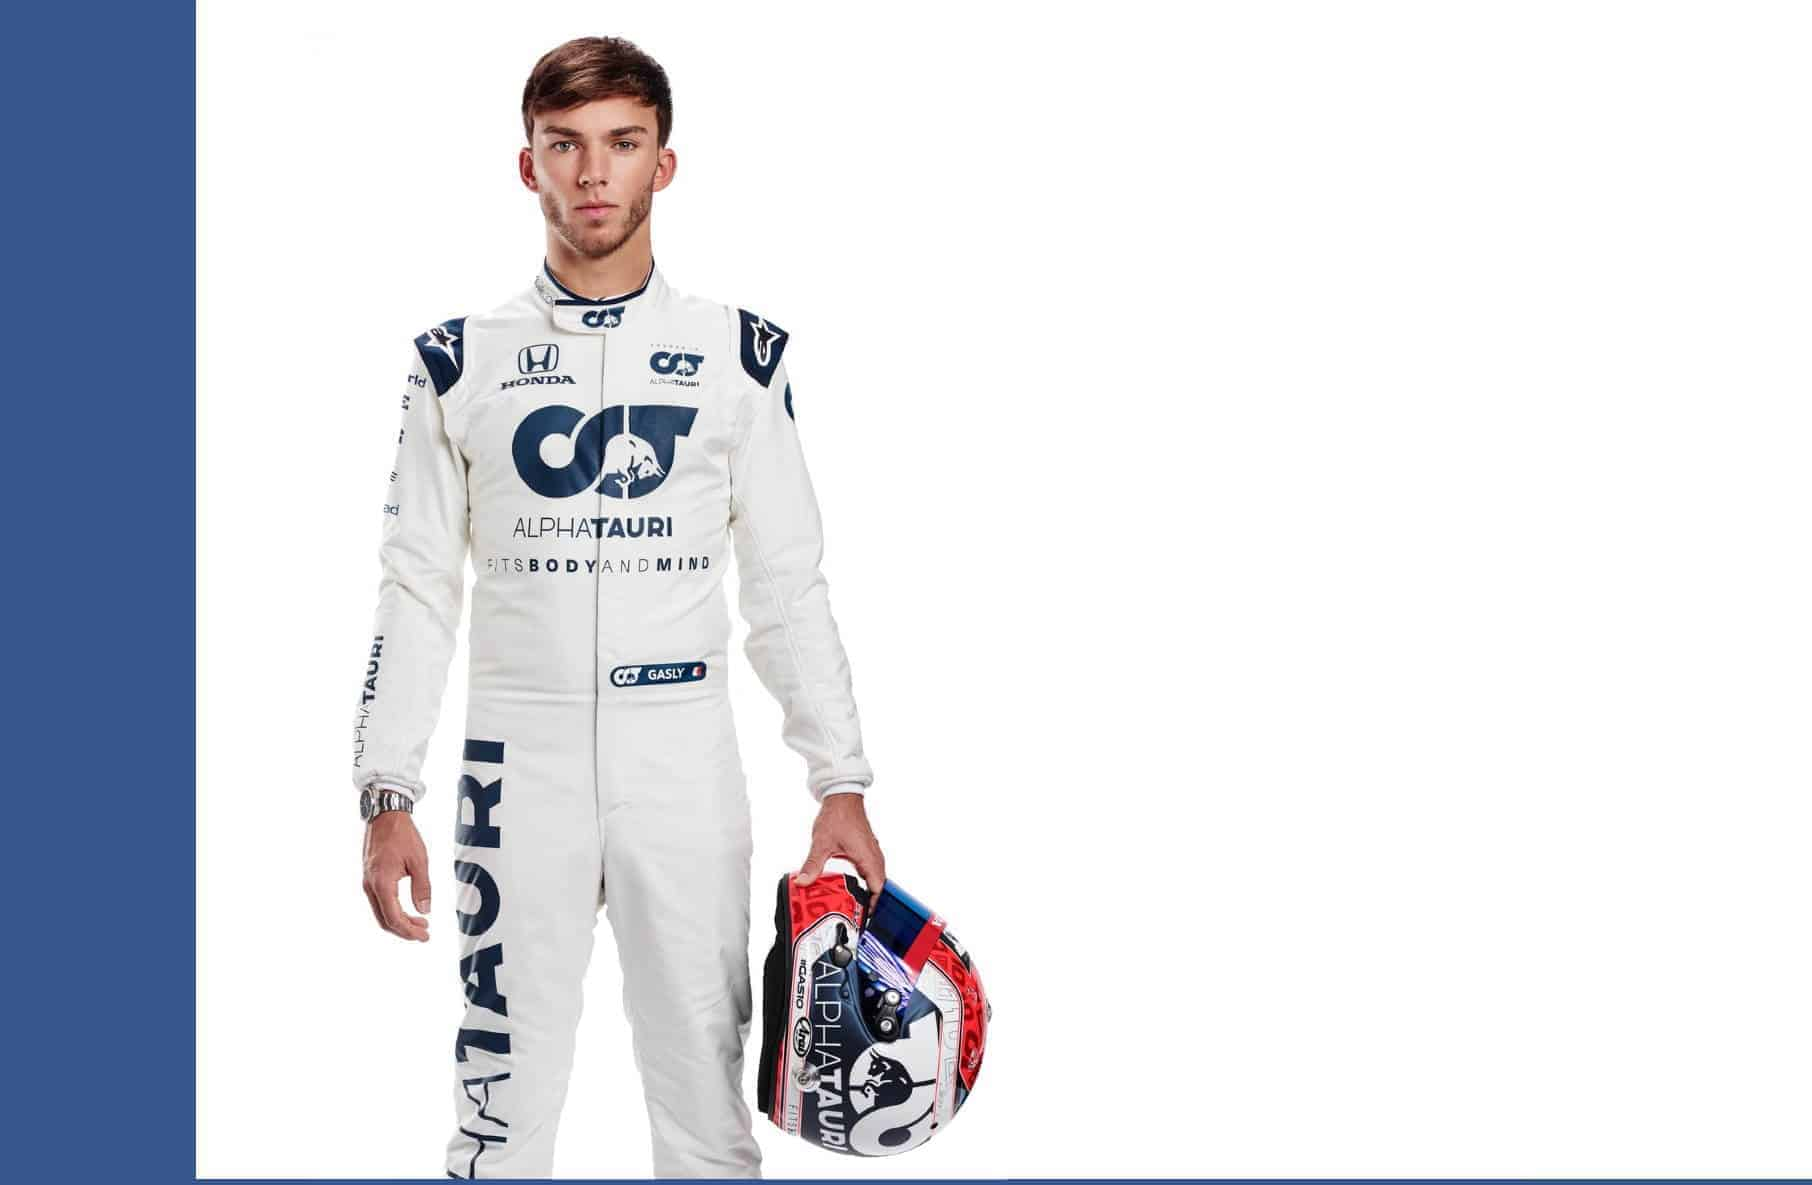 Pierre Gasly F1 2021 profile picture full size Photo AlphaTauri Edited by MAXF1net